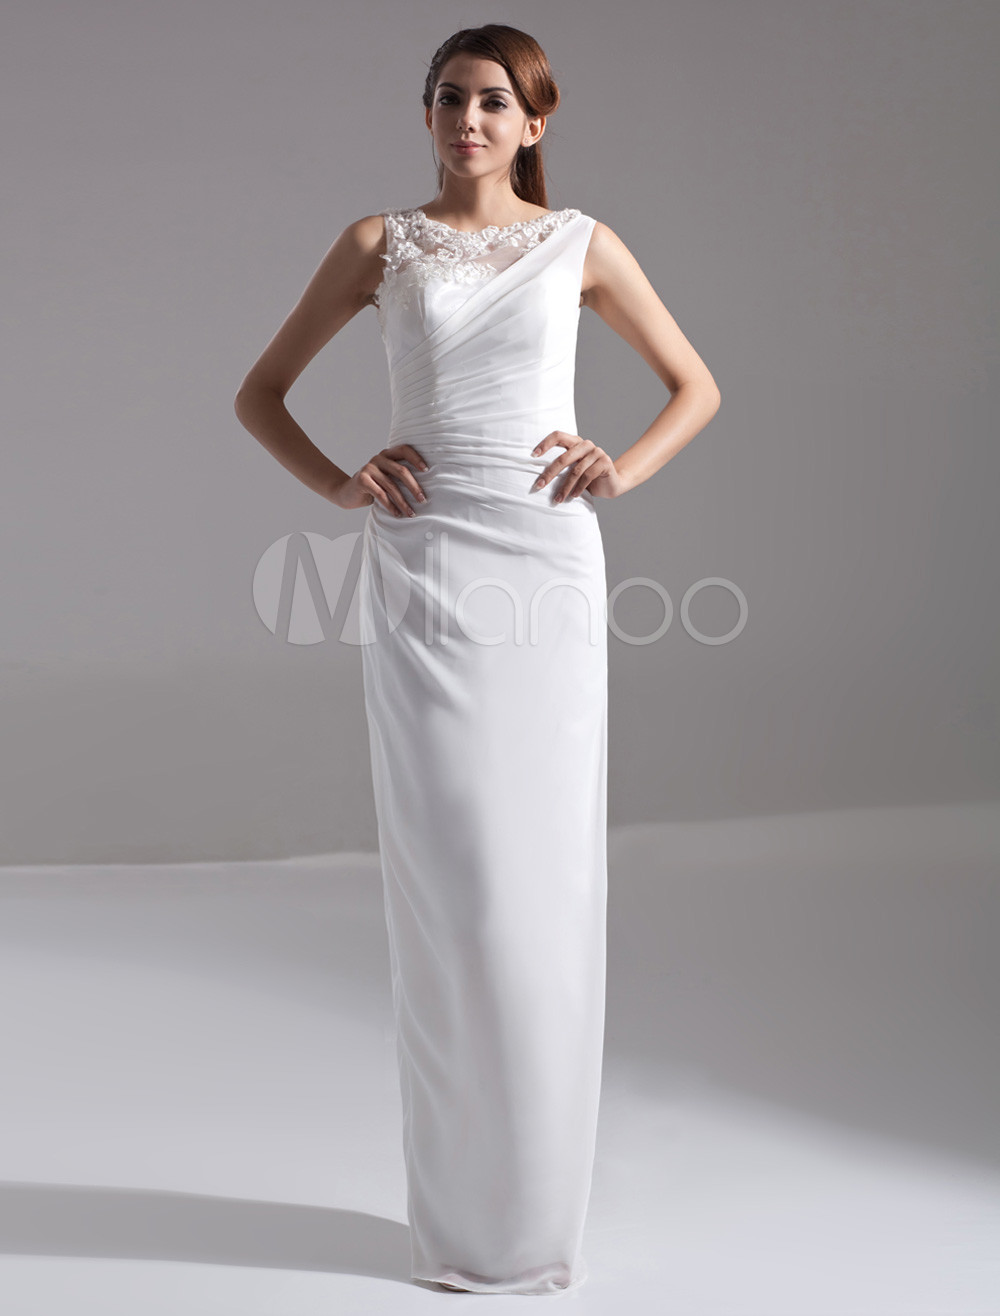 Beautiful White Chiffon Lace Jewel Neck Floor-Length Bridesmaid Dress For Wedding